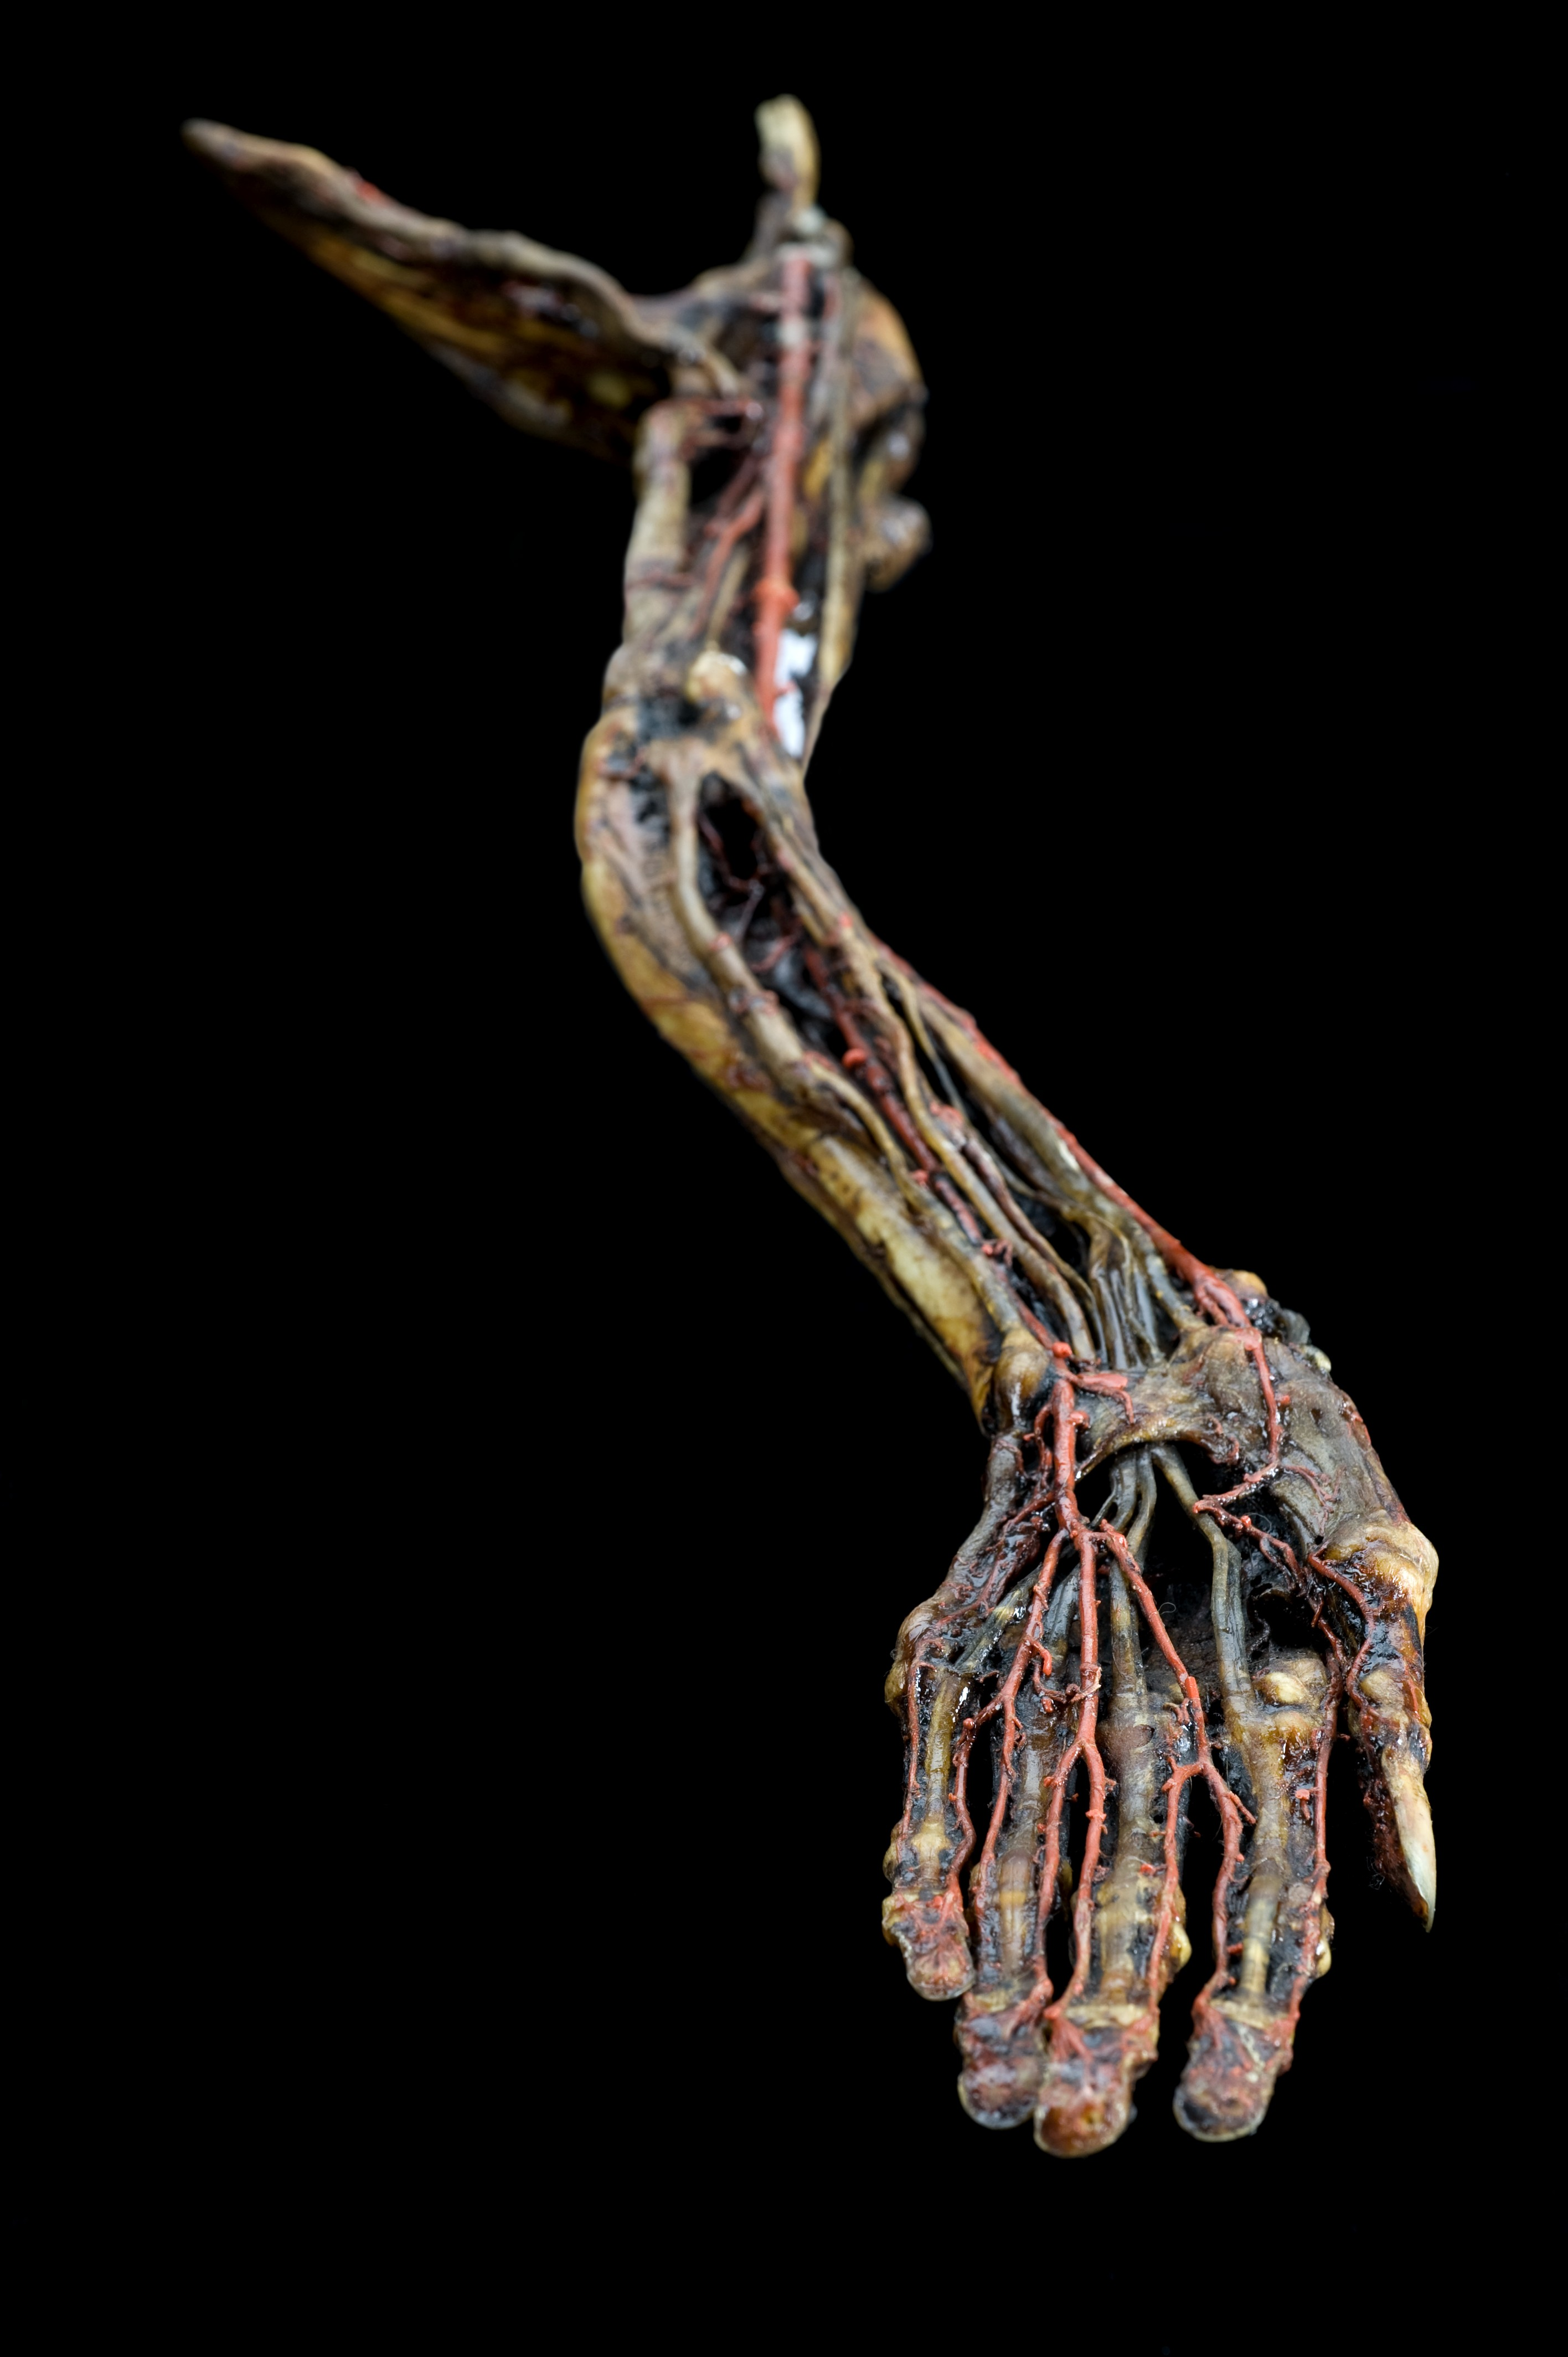 File:Wax injected human left arm, Europe, 1831-1870 Wellcome ...